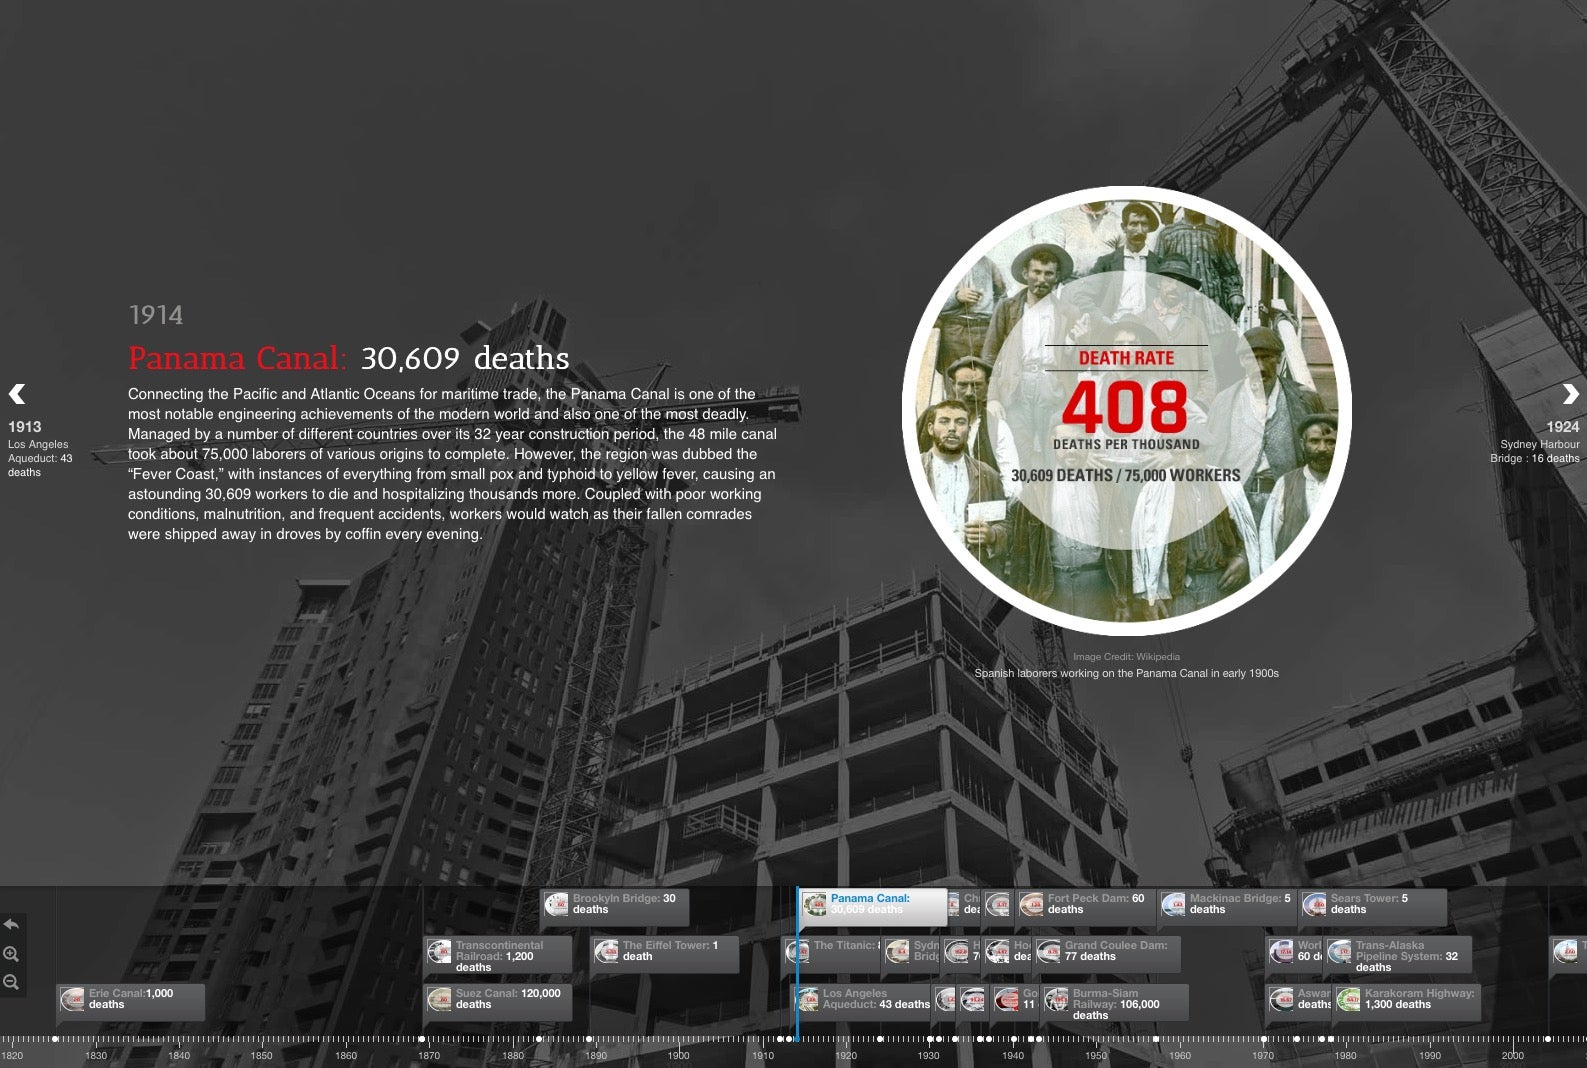 The World's Deadliest Construction Projects, Visualized